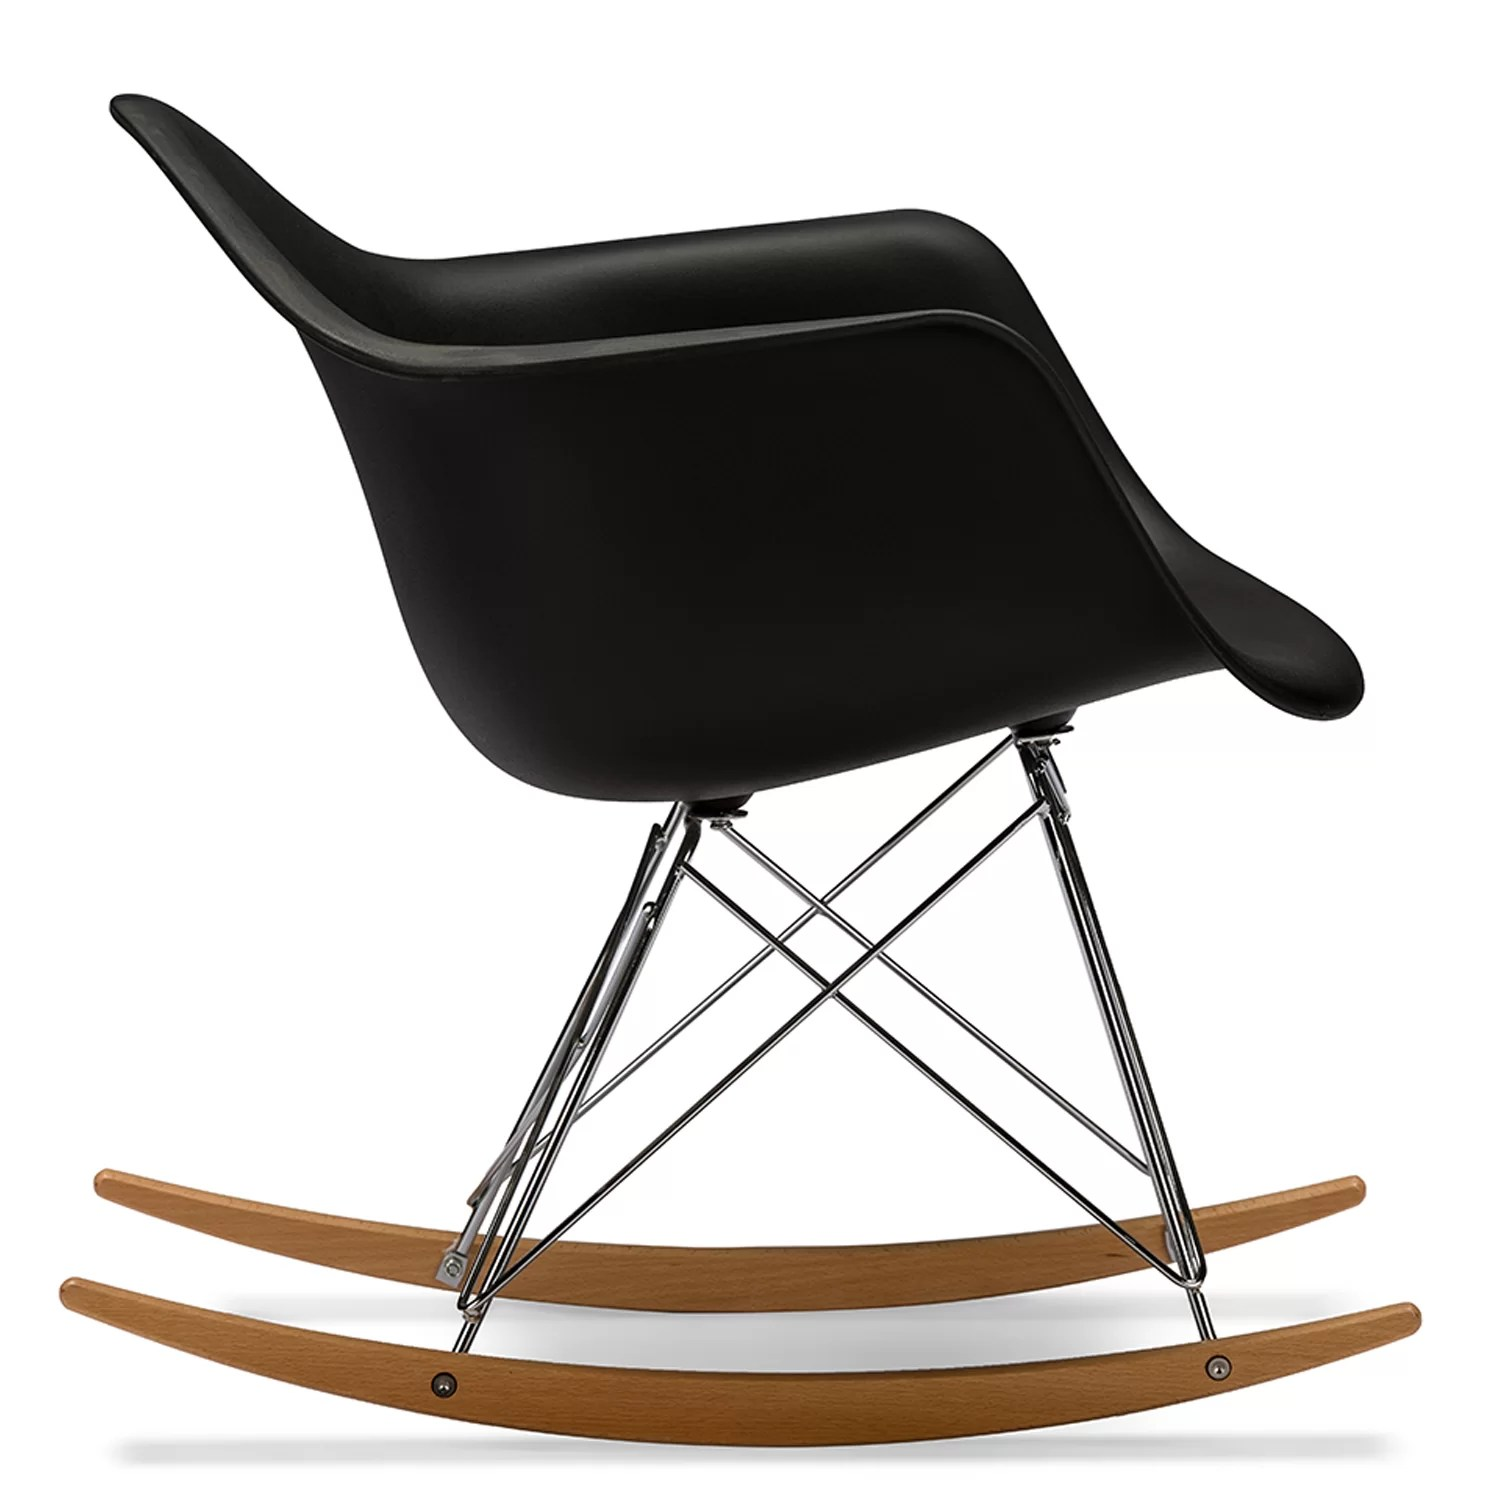 Baxton Chair Wholesale Interiors Baxton Studio Charlie Rocking Chair In